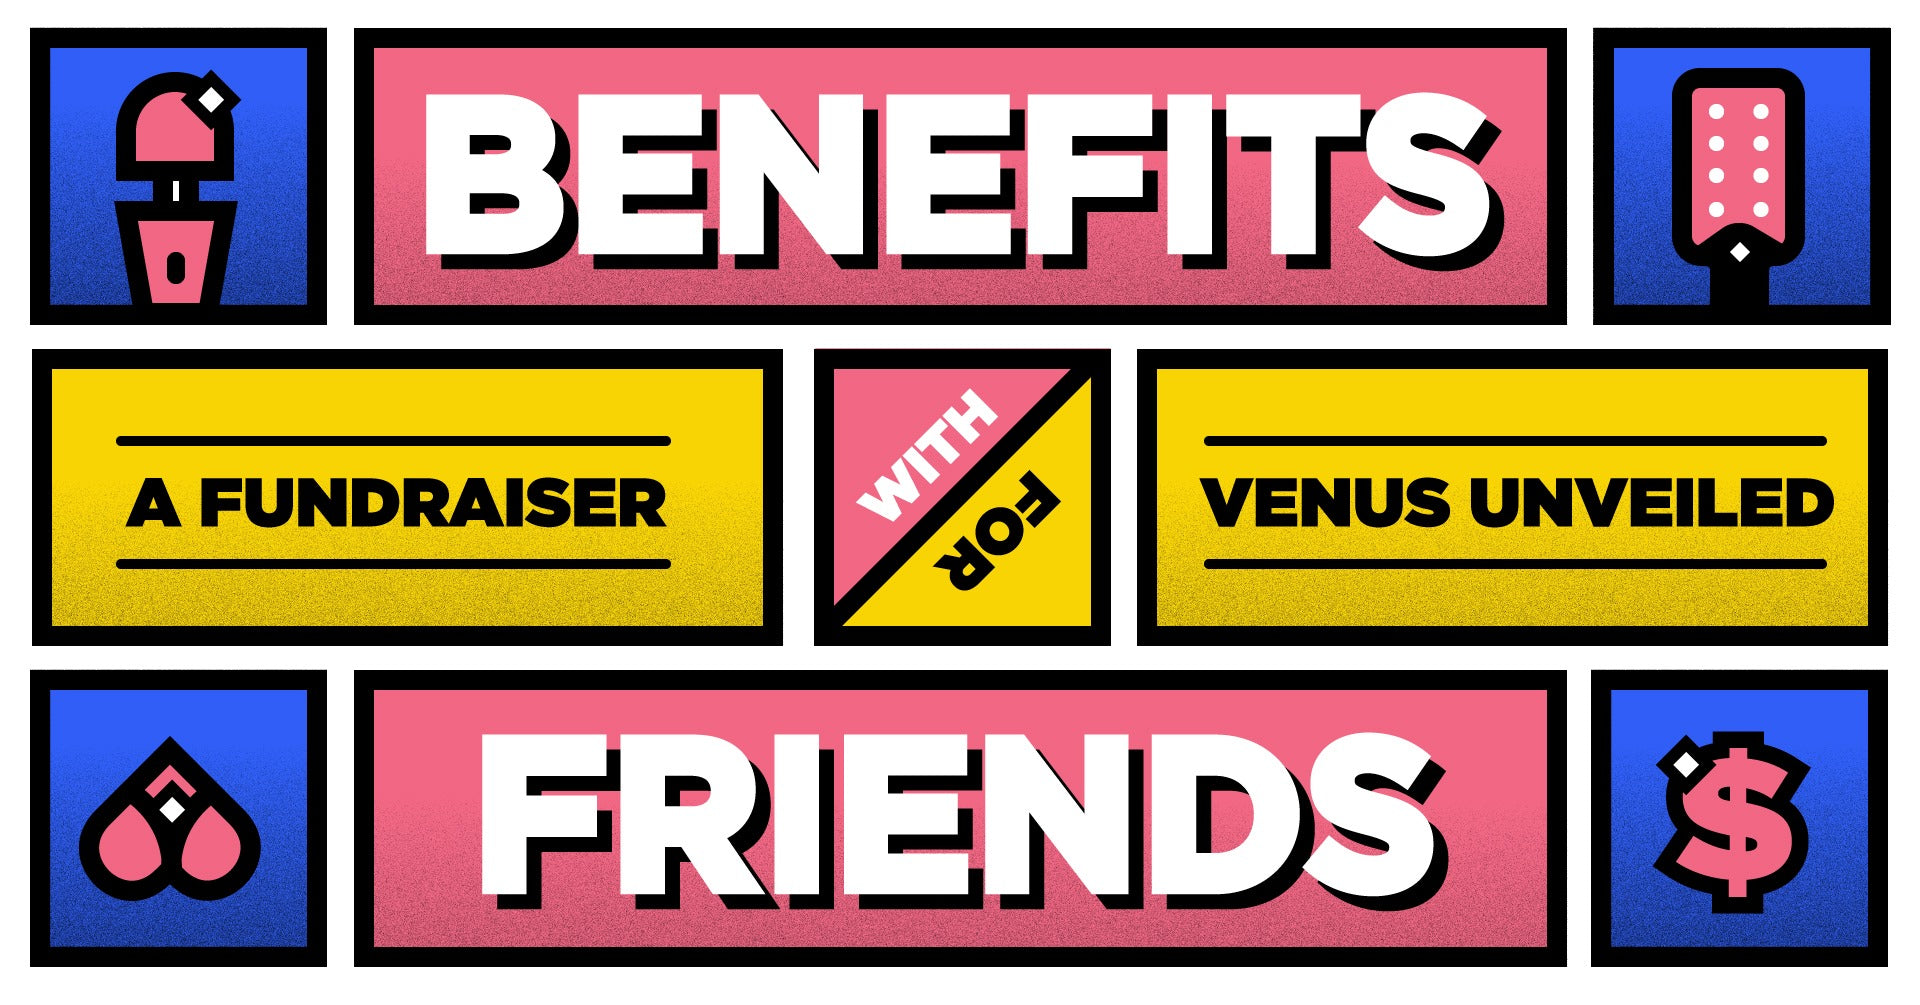 Benefits with Friends: A Fundraiser for Venus Unveiled